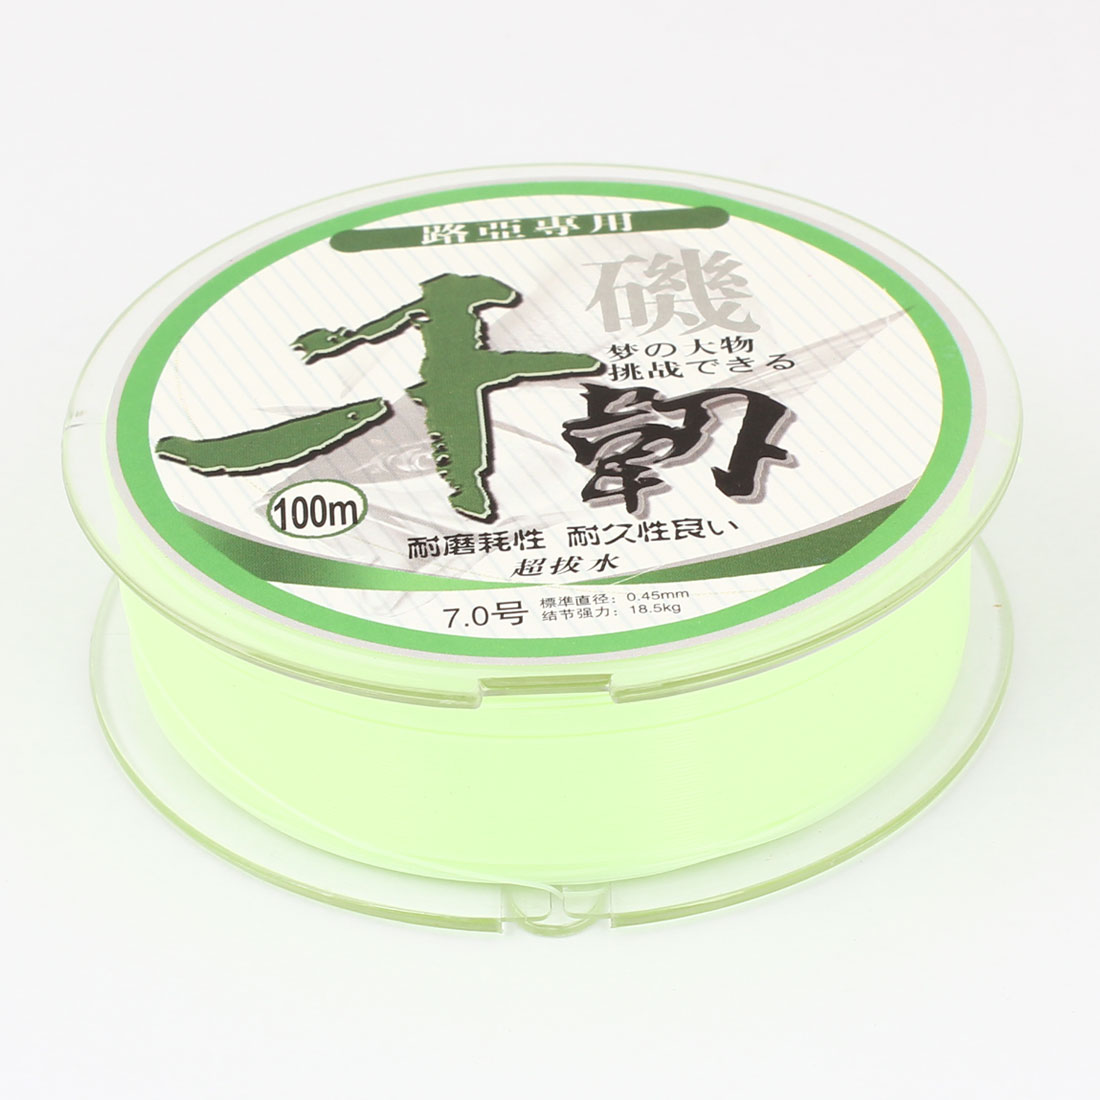 18.5Kg 40.8 lb 0.45mm Dia 100M Light Green Nylon Fishing Spool Line String